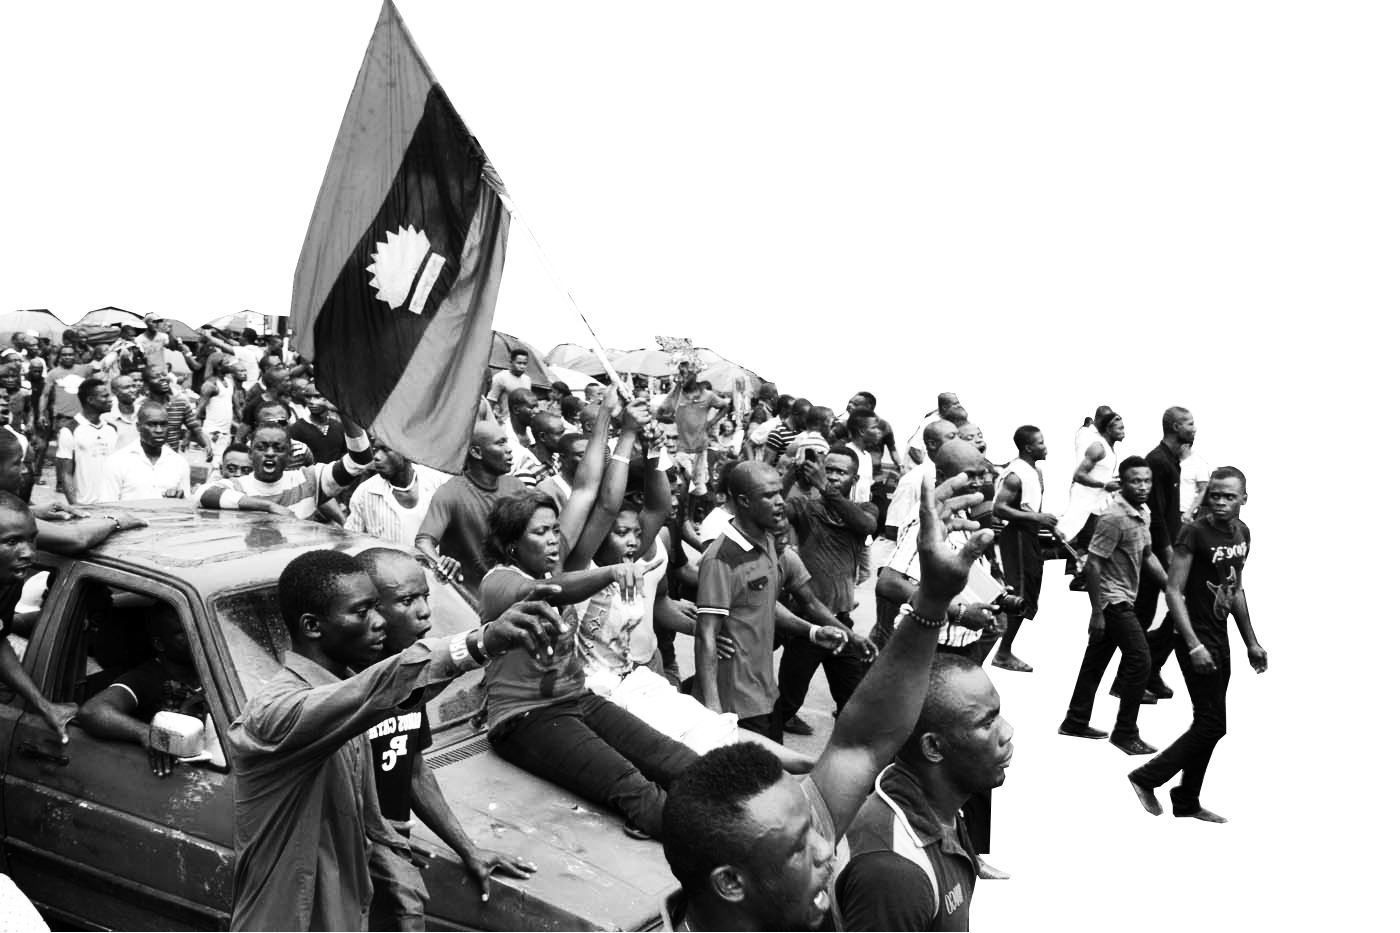 Threatened orders — Non-violent Protests for Biafra